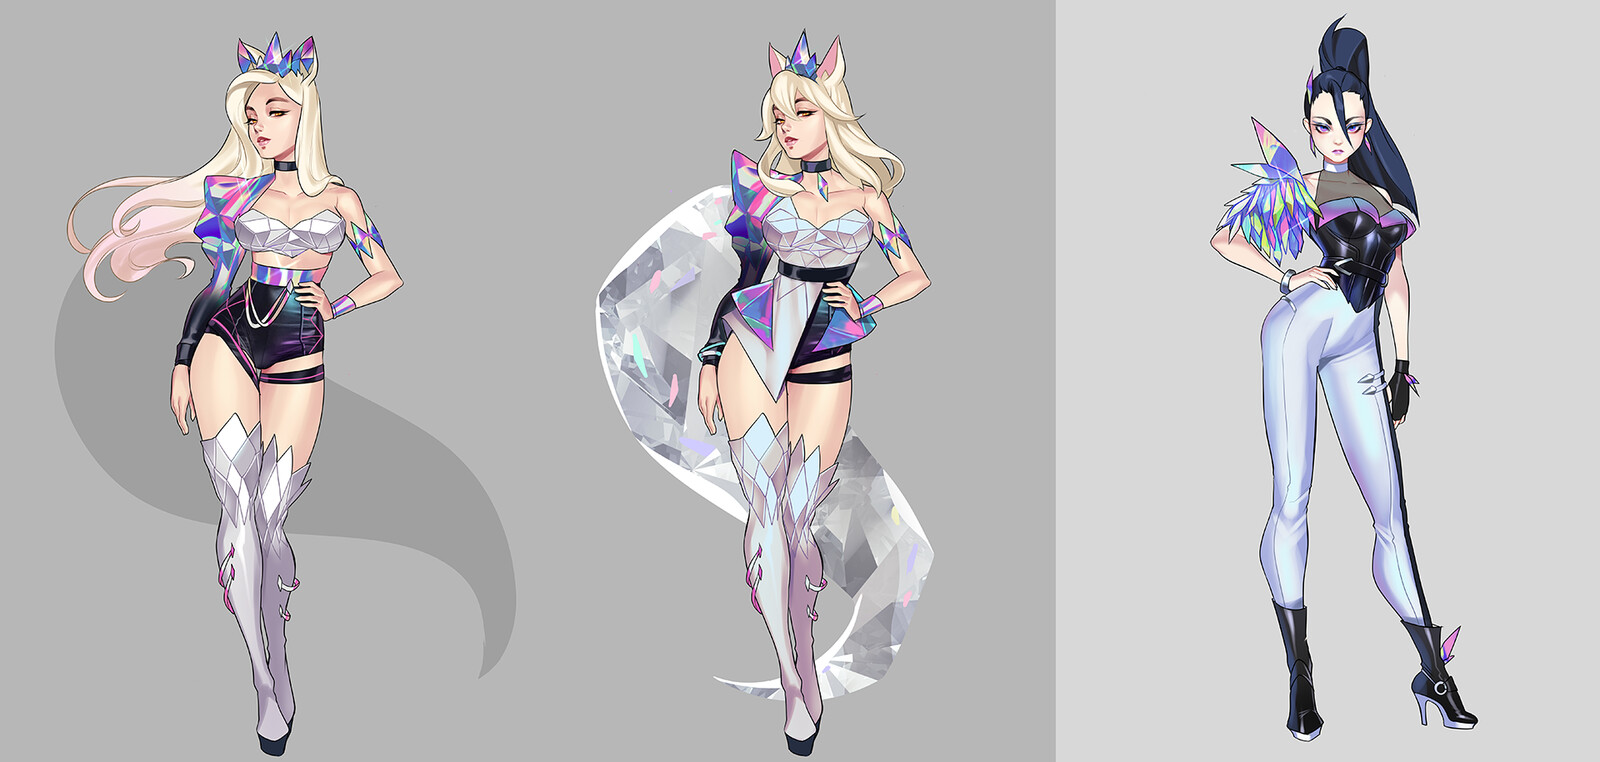 Ahri and Kaisa explorations! this was when we were getting closer to their final designs. Final concept for Ahri by Rheekyo Lee, final Kai'Sa by Nancy Kim!